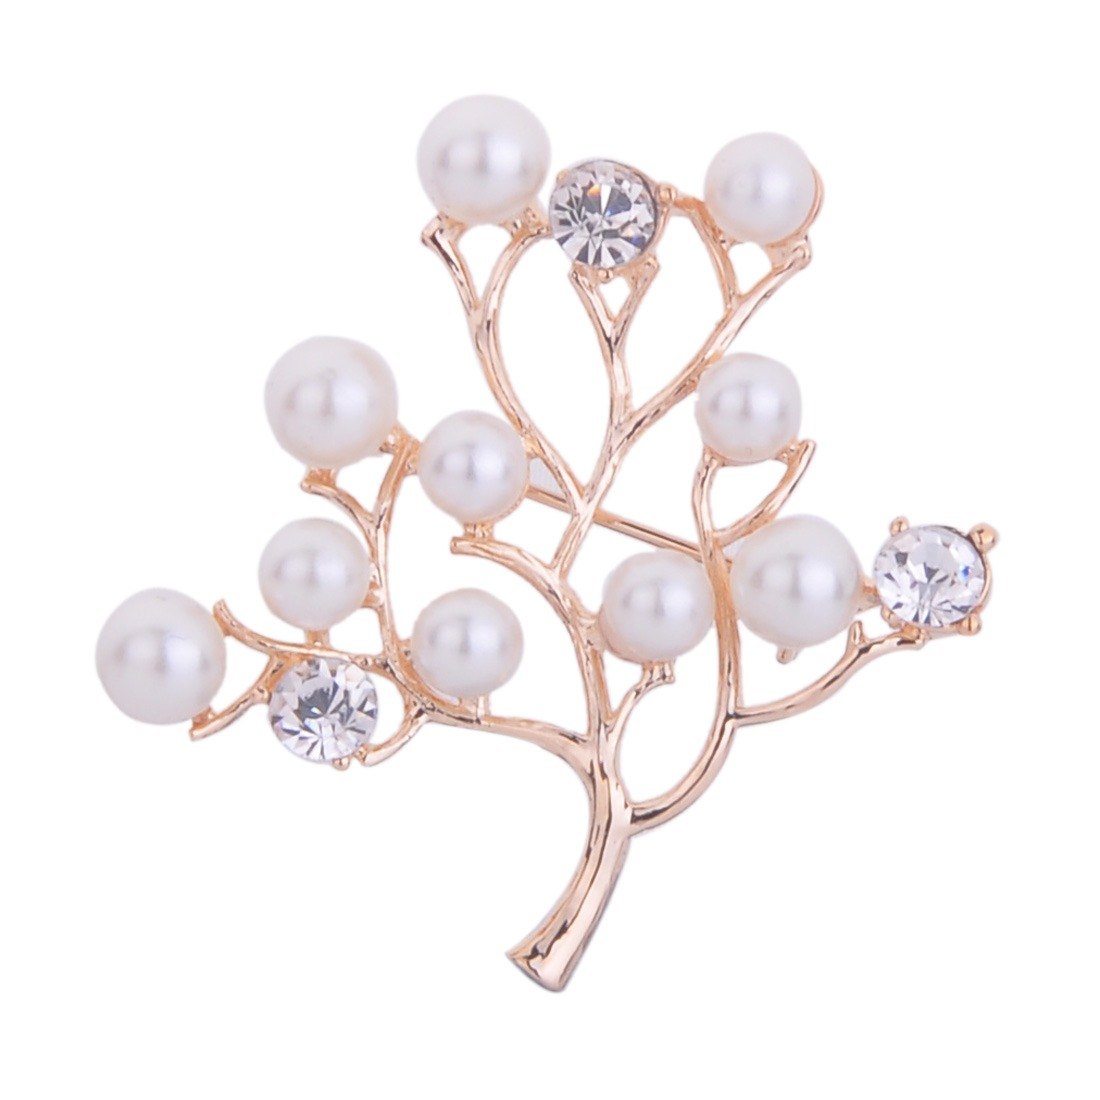 Big tree rich pearl white fruits harvest meaning Christmas pin brooch bouquet